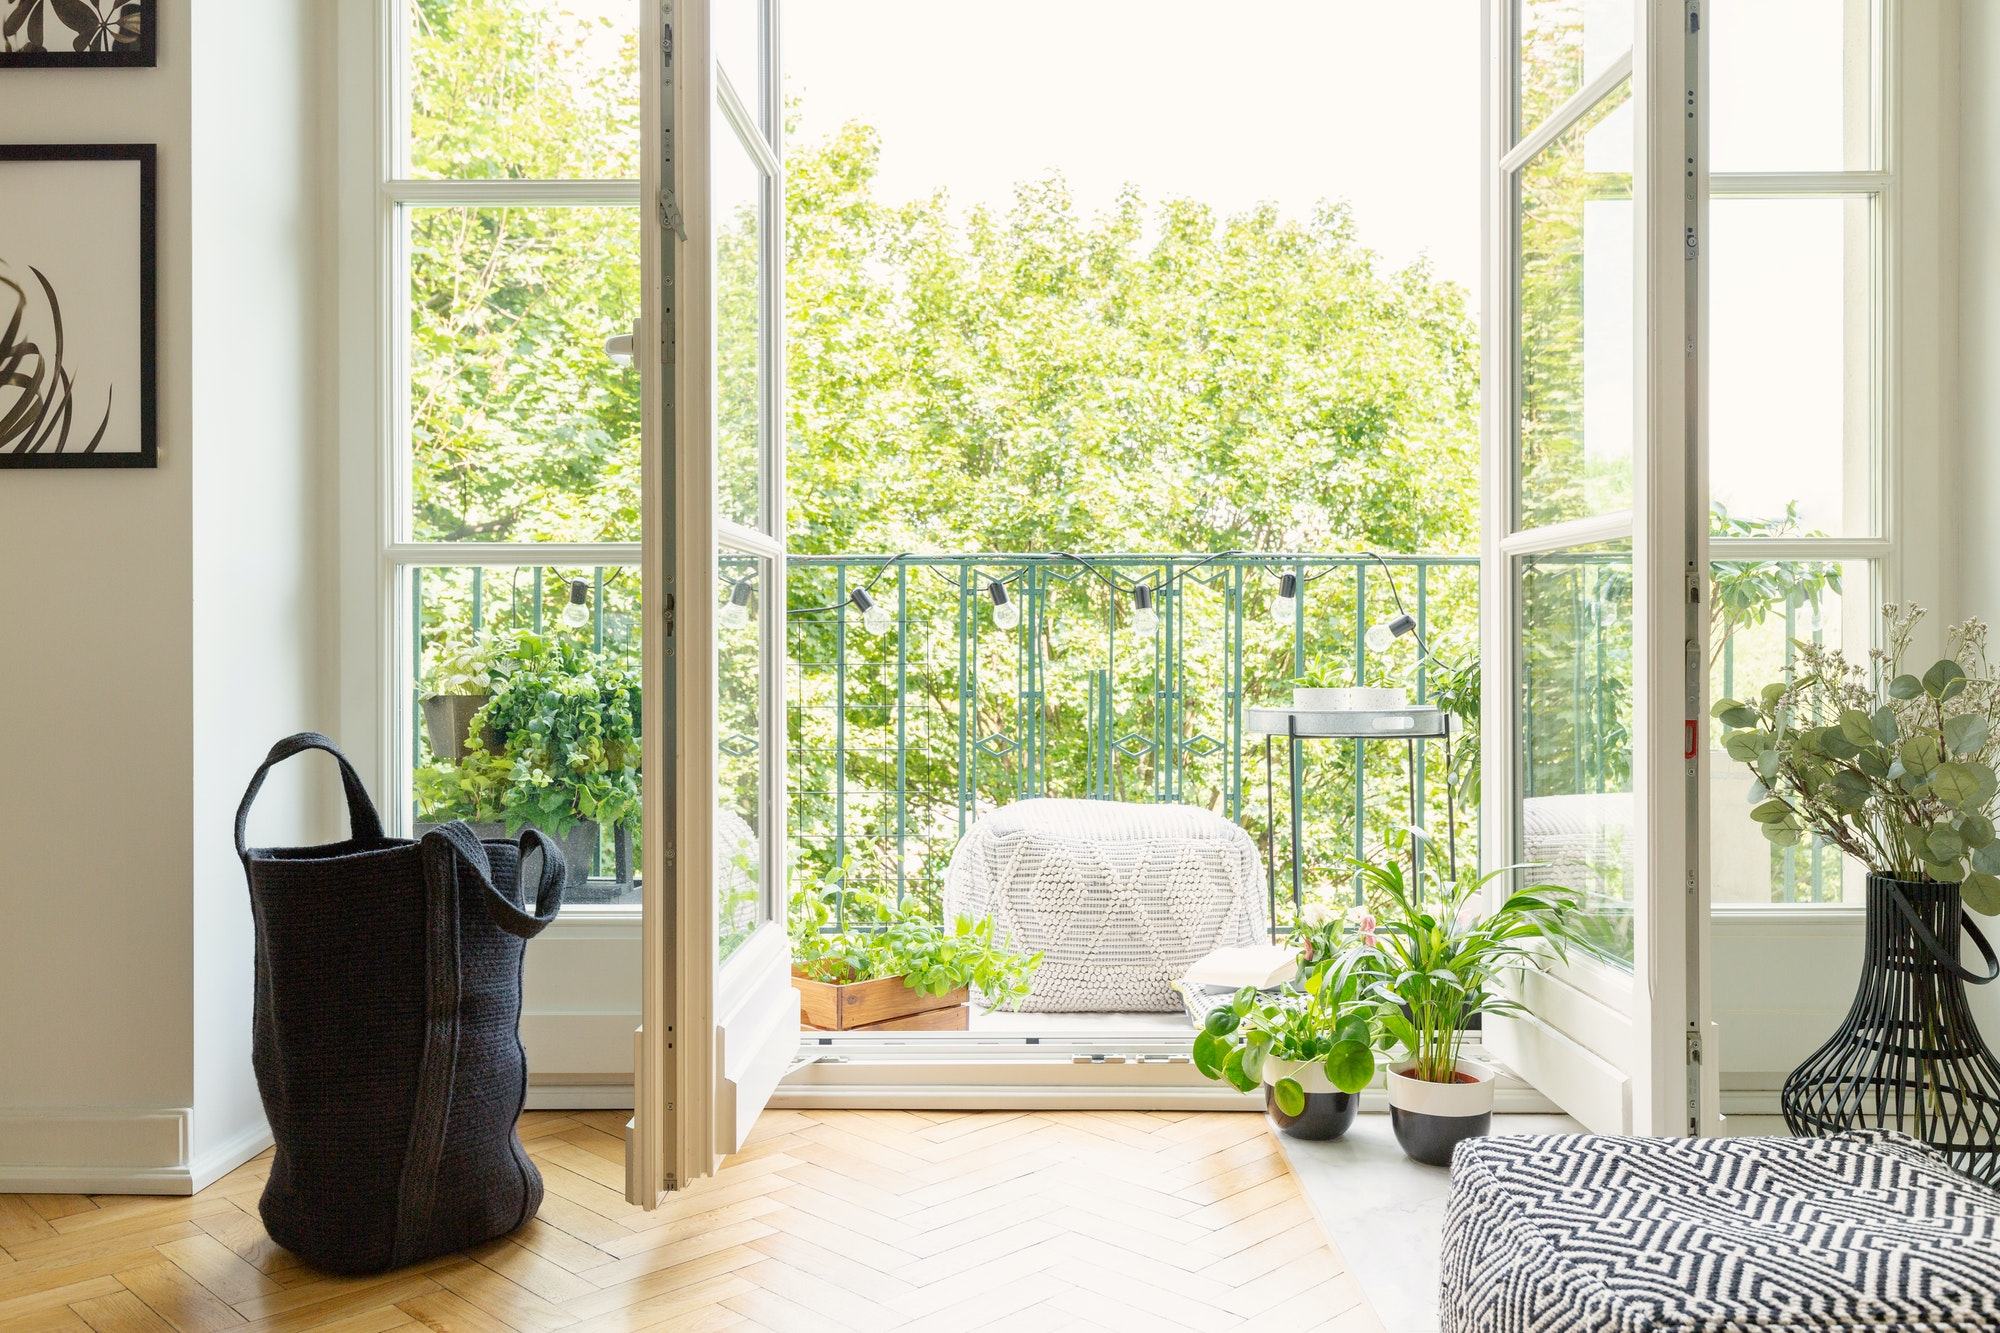 Lot of green plants and open balcony door in modern apartment, r